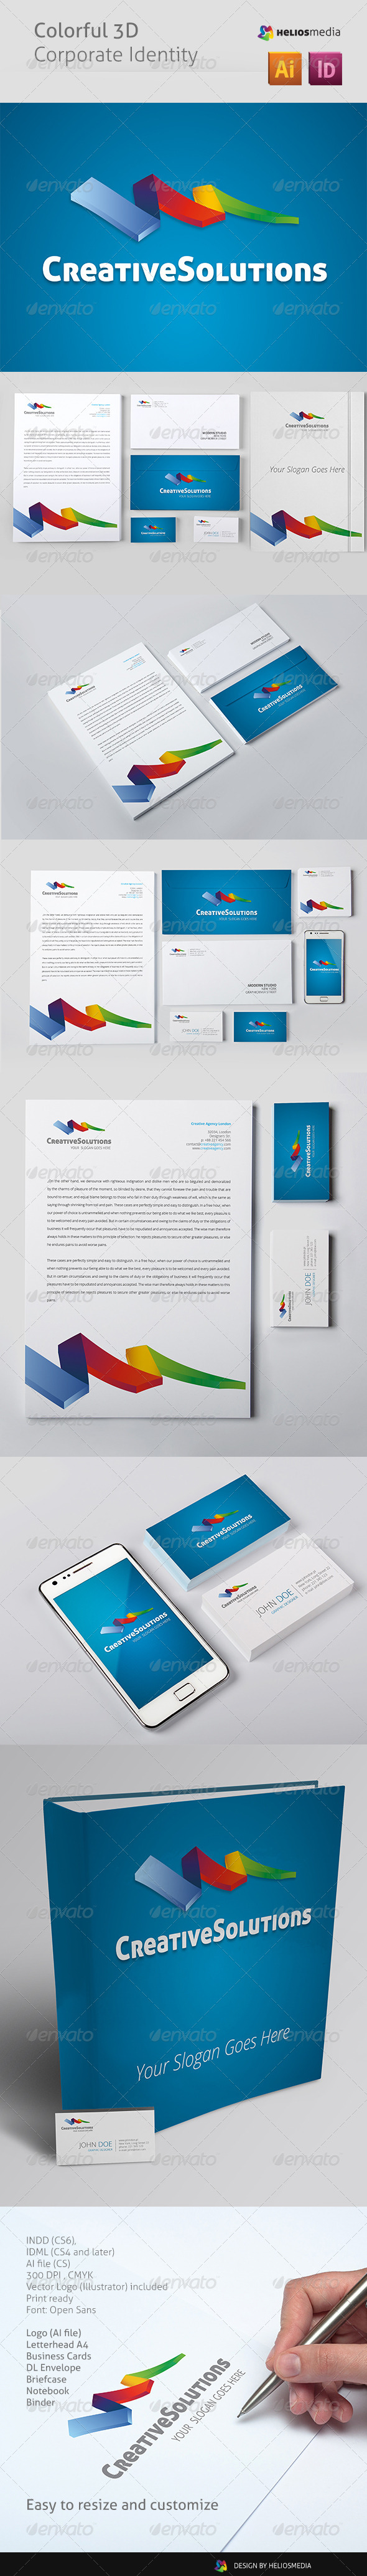 Colorful 3D Corporate Identity - Stationery Print Templates